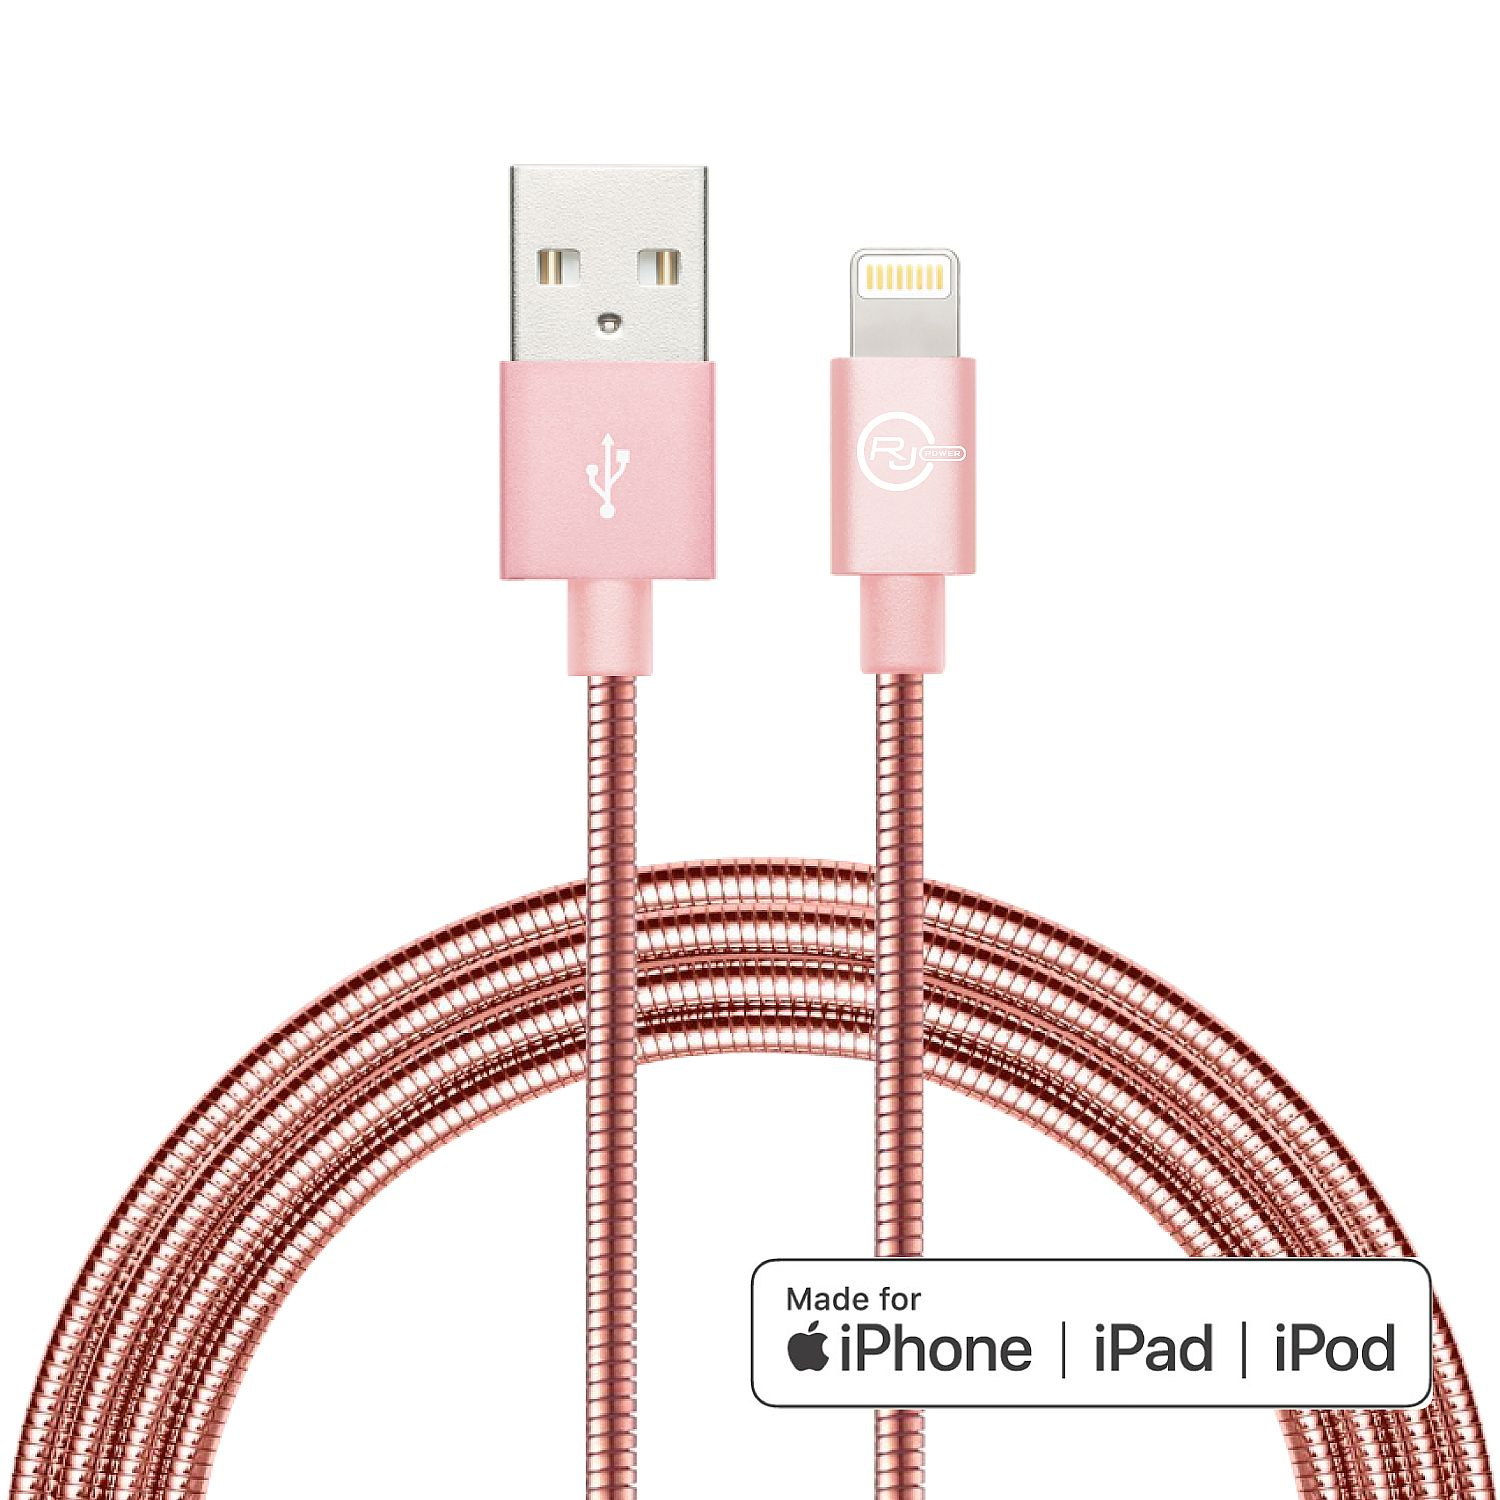 RJ Power Premium Metallic Sync/Charge Cable with Lightning connector, 3 Ft- Rose Gold